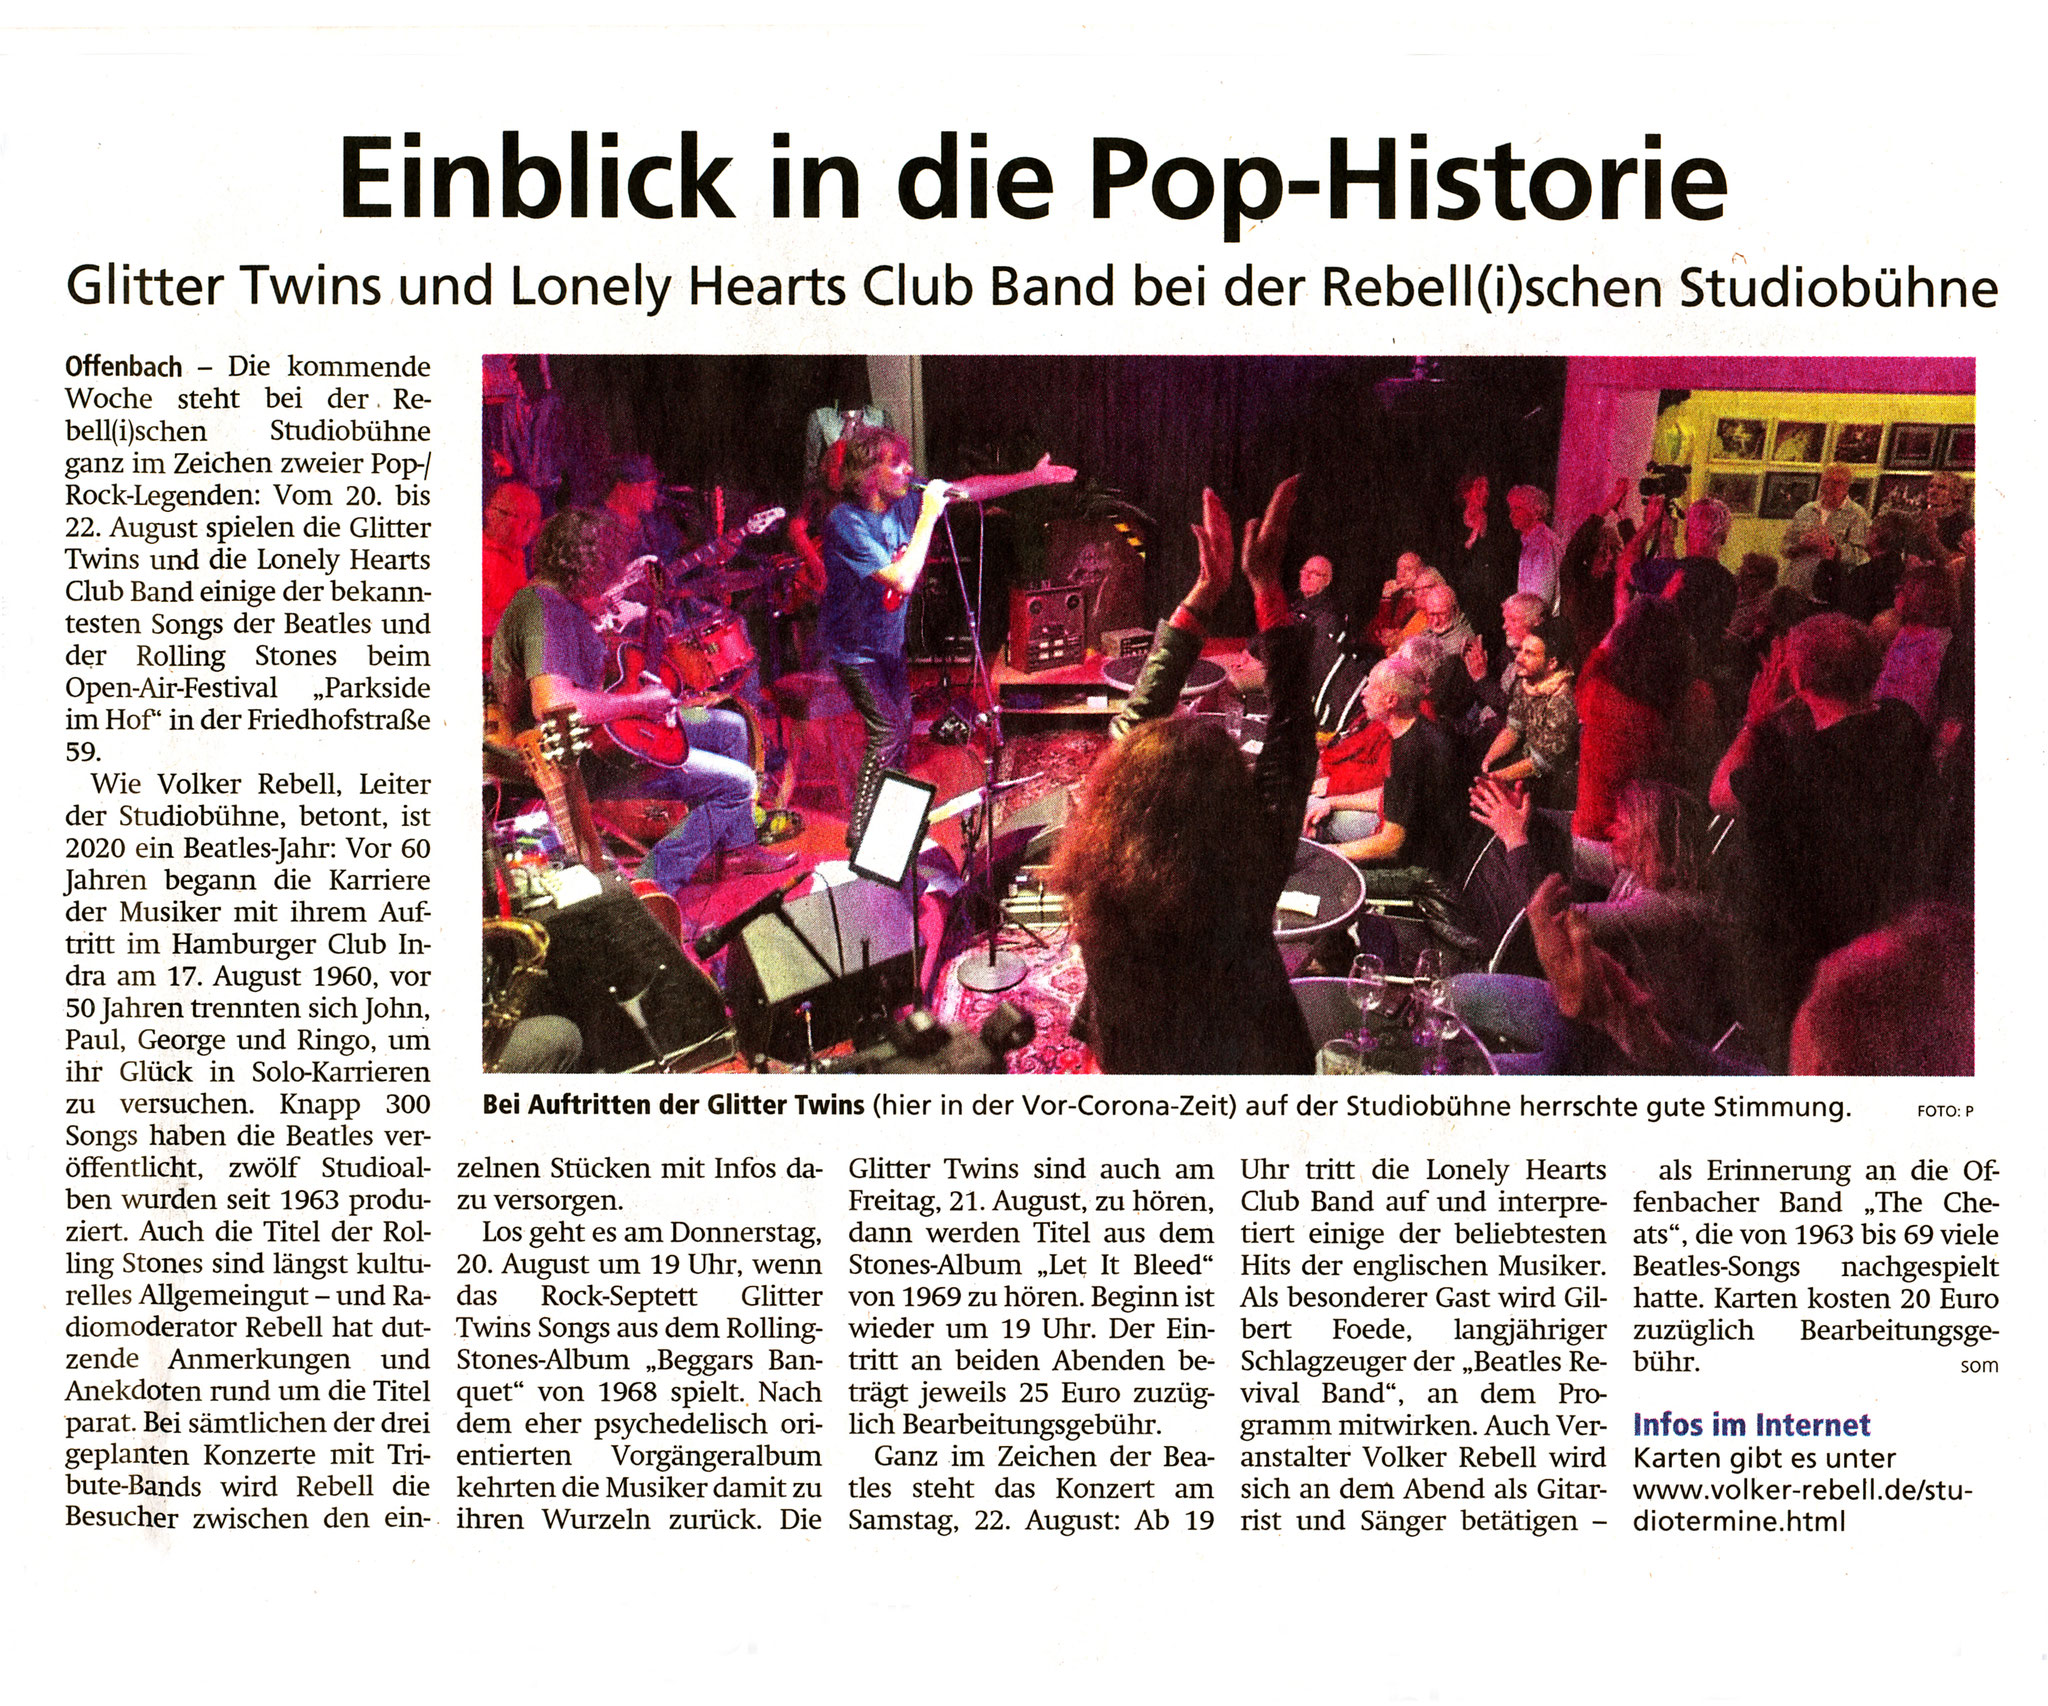 Offenbach Post, 11. August 2020